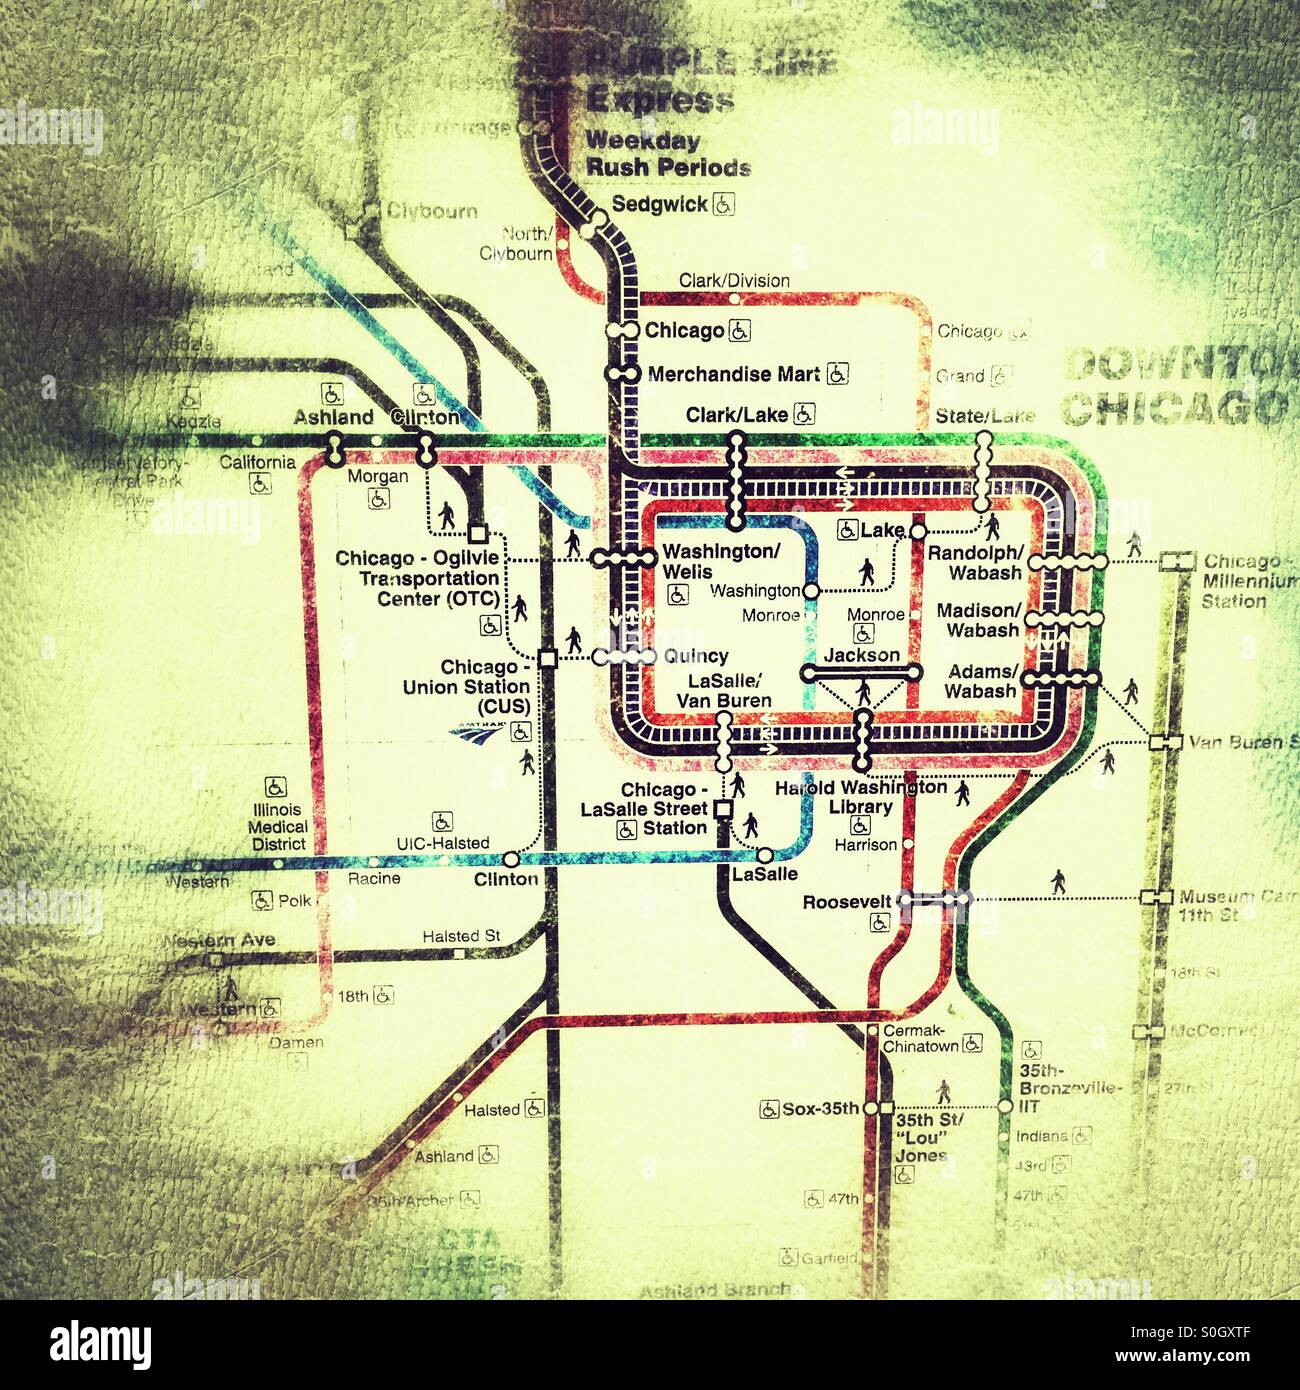 Chicago Subway Map With Streets.Chicago Transit Authority Stock Photos Chicago Transit Authority